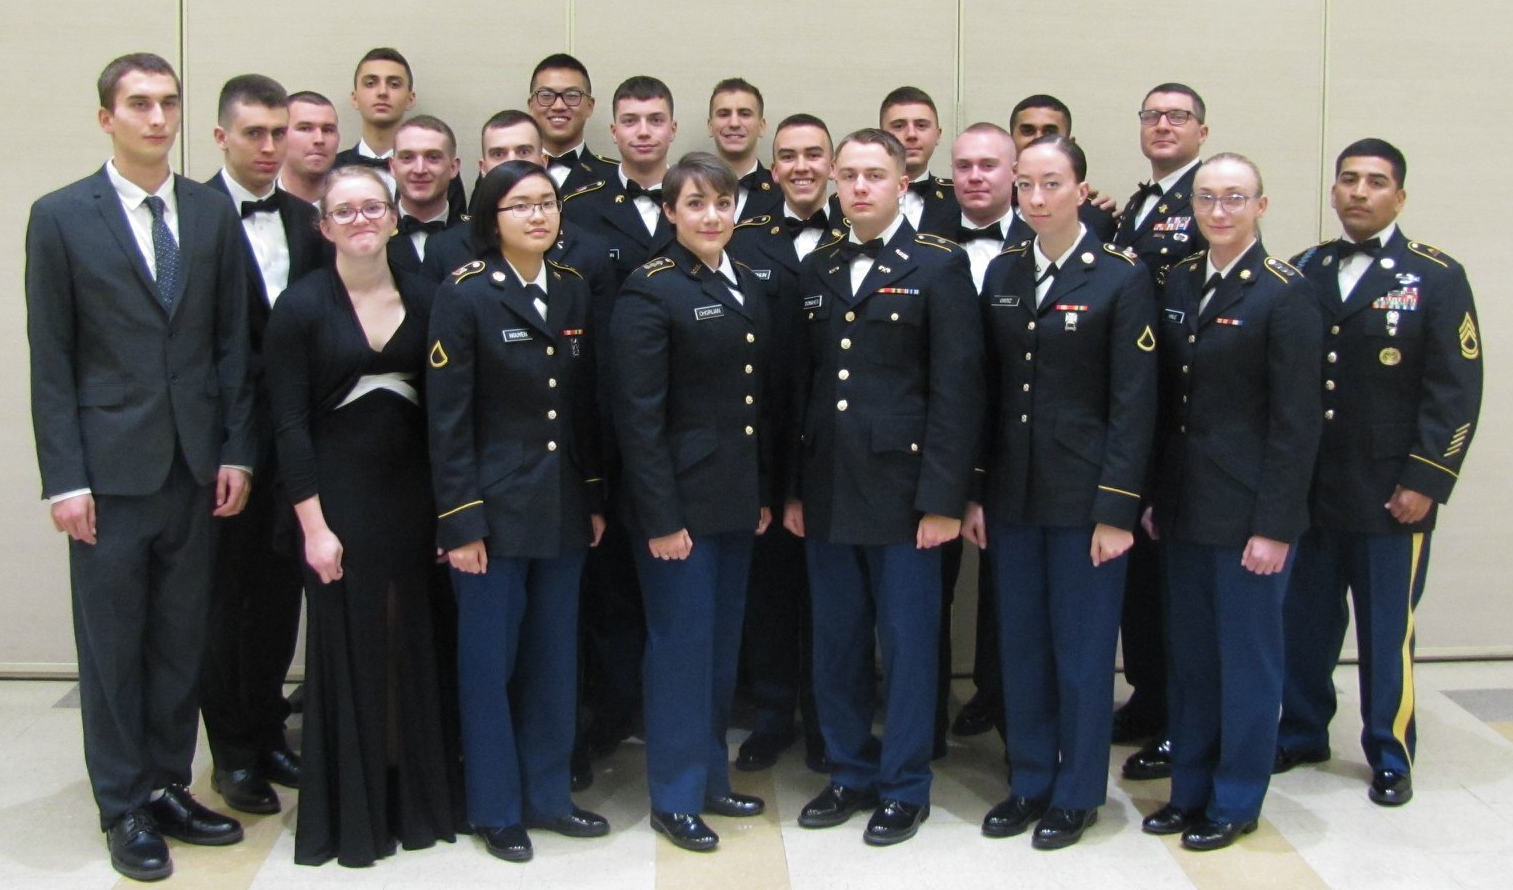 UML Cadets in uniform at dining in